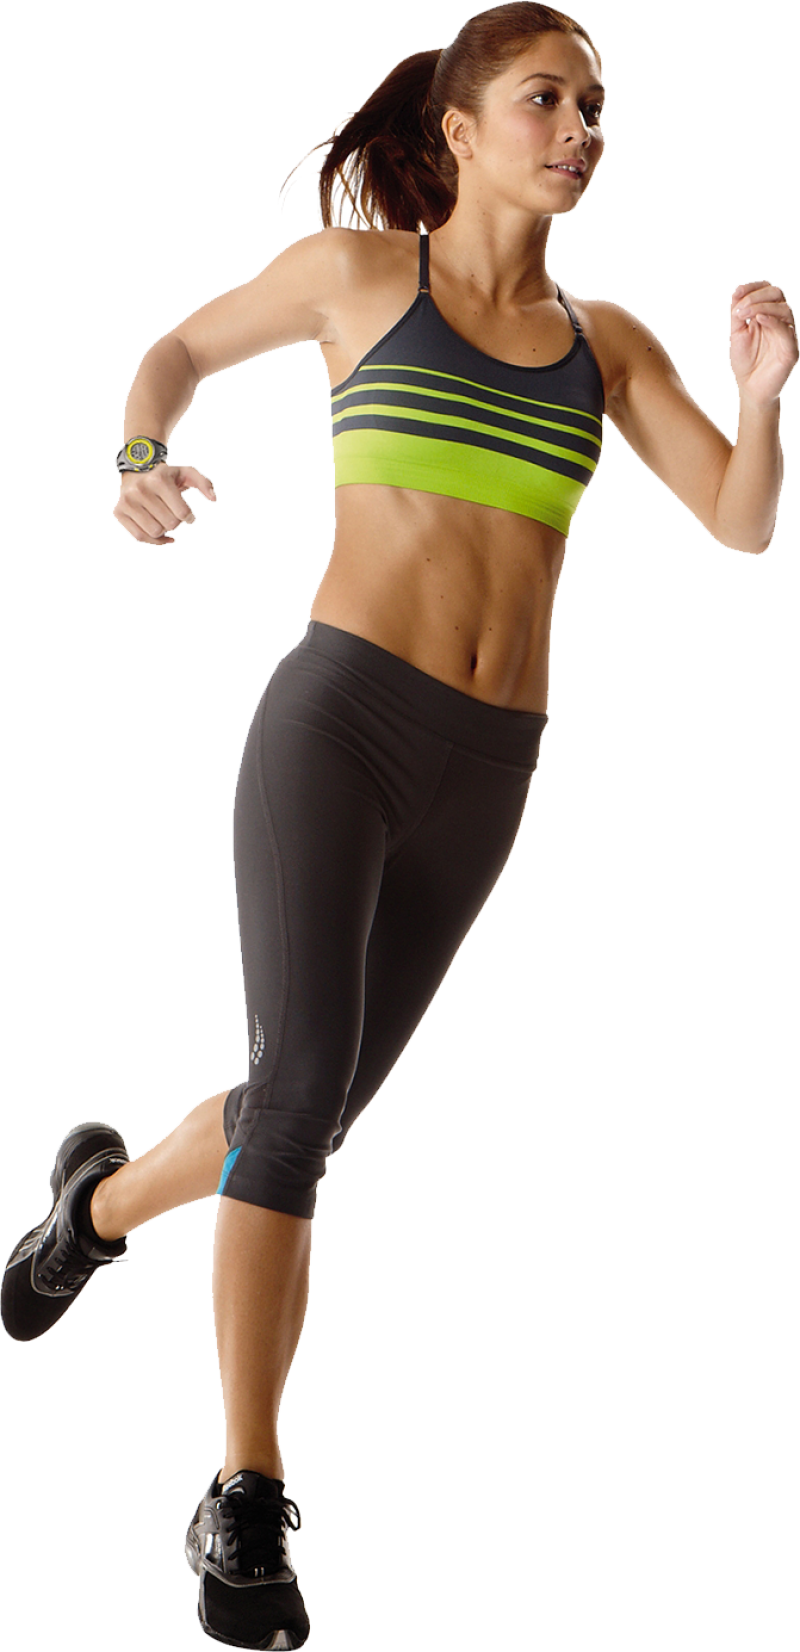 Running Women Png Image Purepng Free Transparent Cc0 Png Image Library